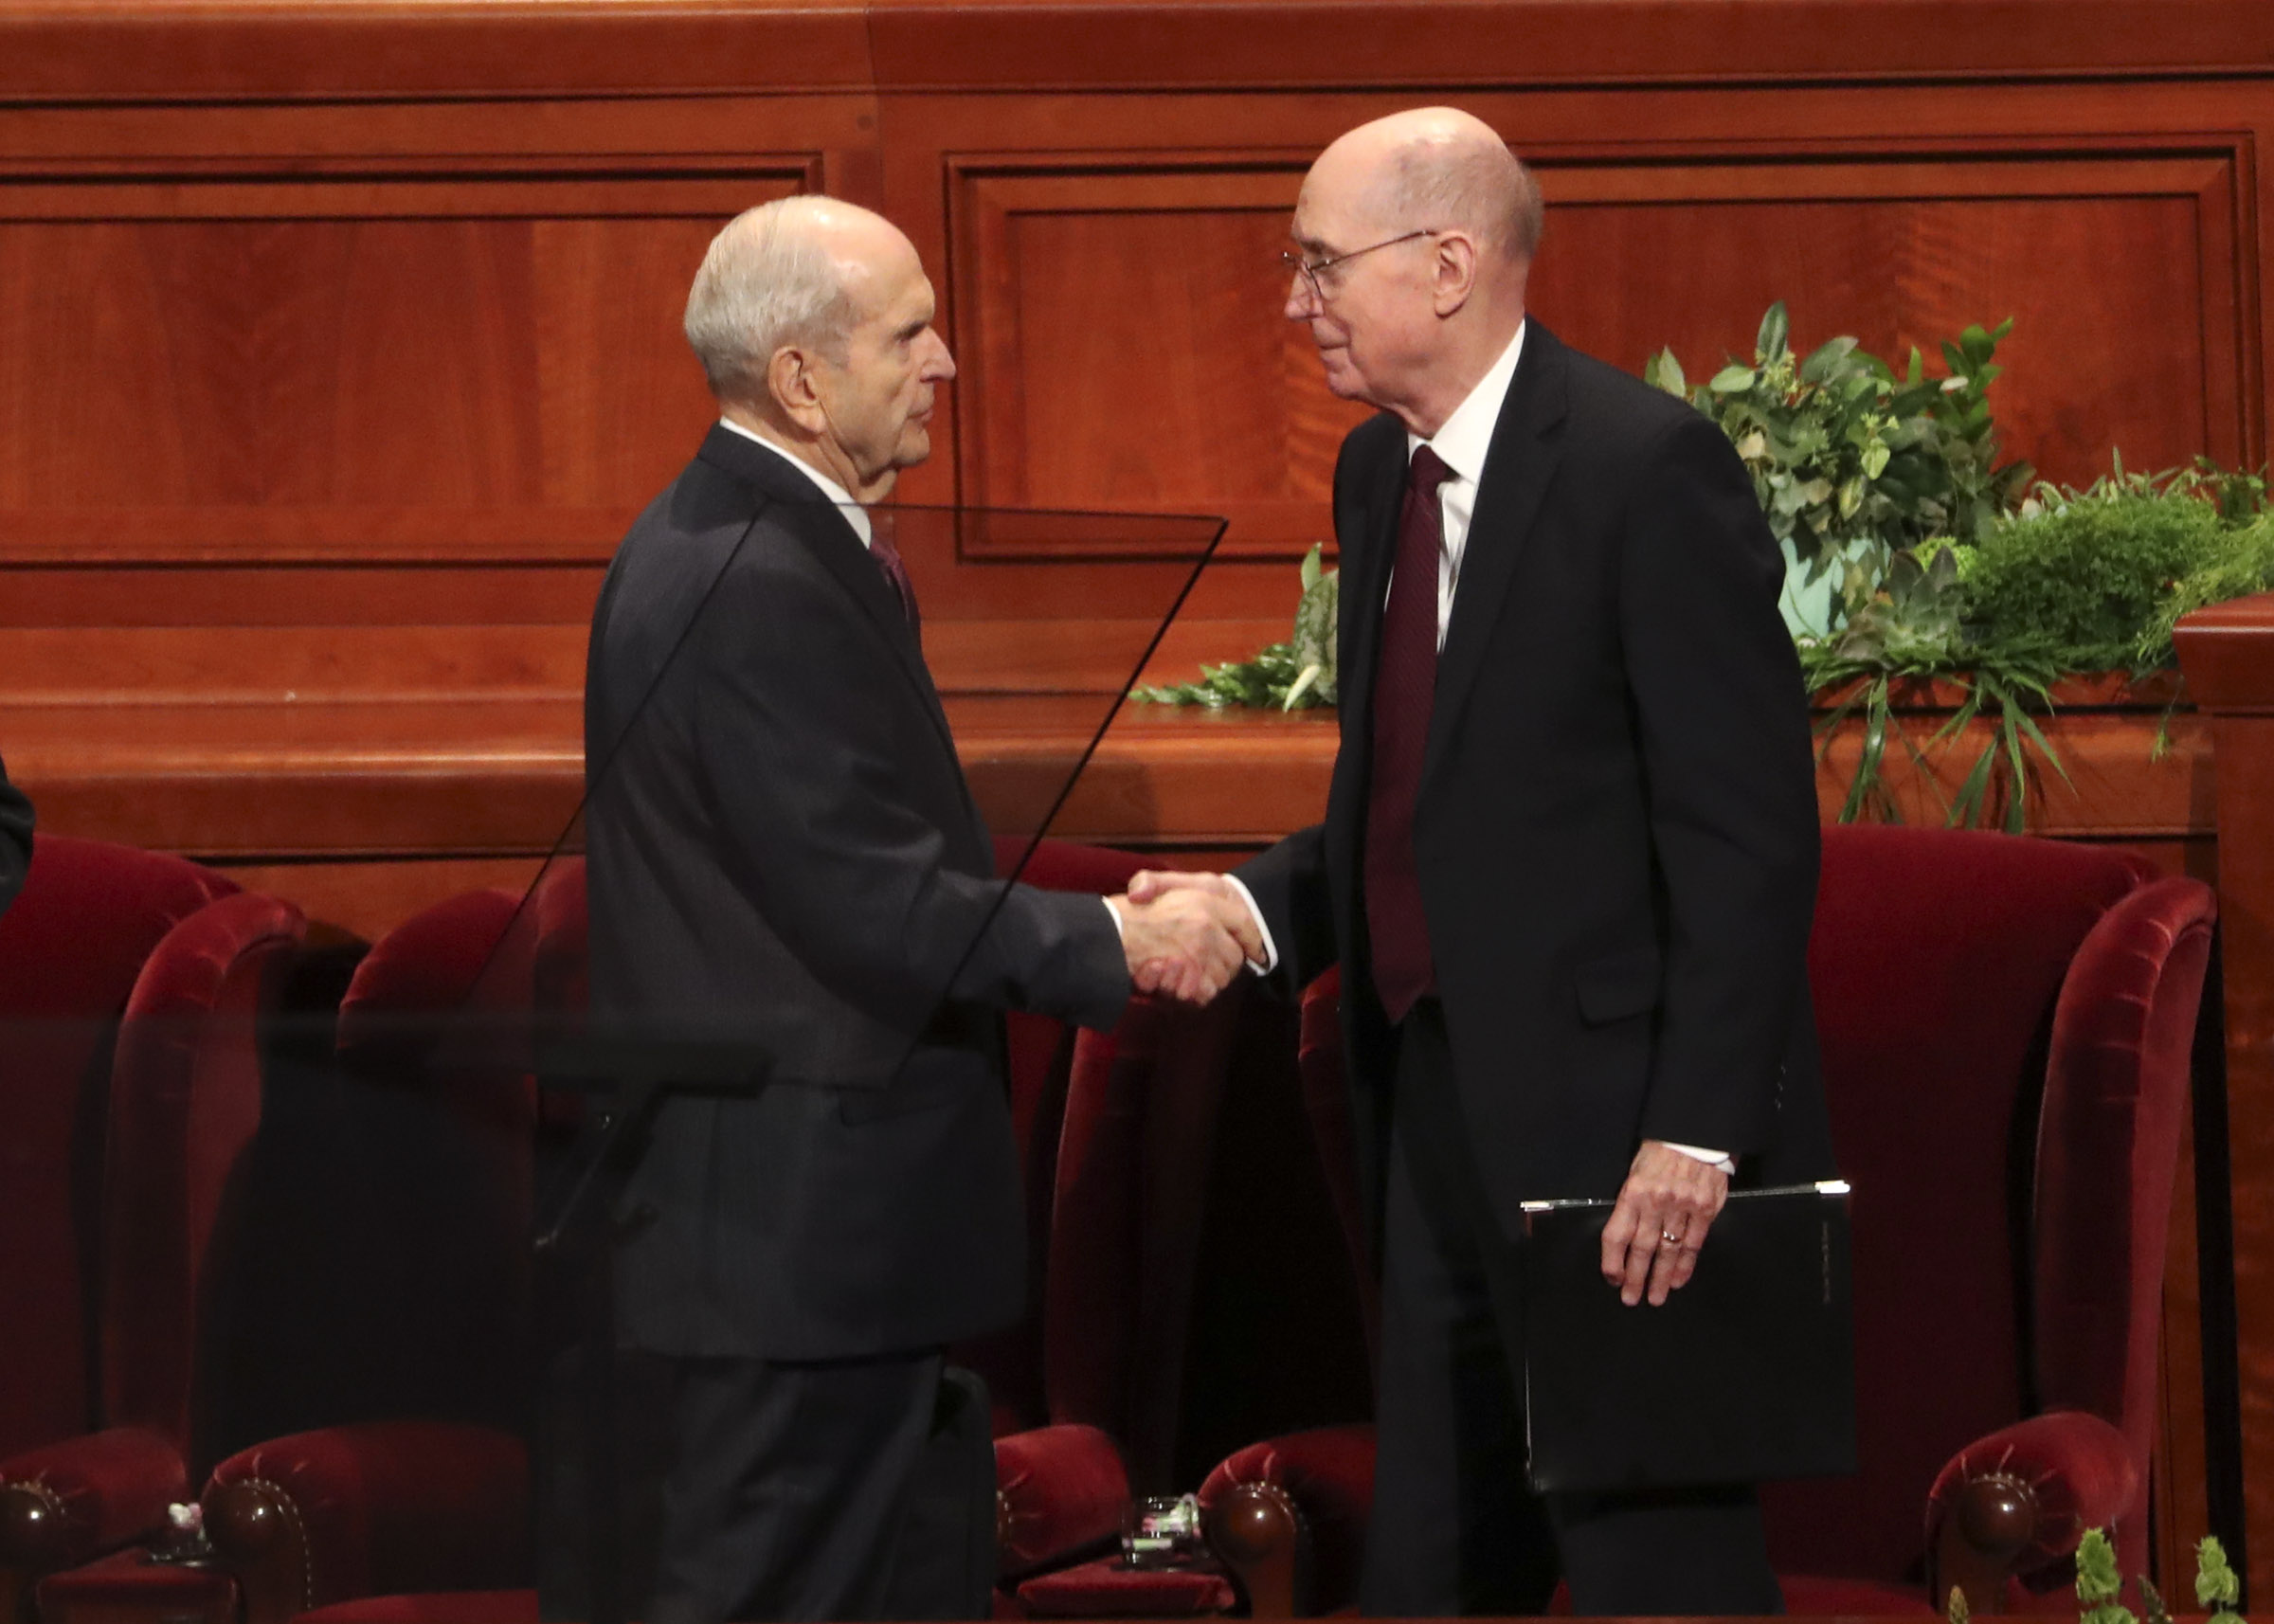 President Russell M. Nelson of The Church of Jesus Christ of Latter-day Saints, left, shakes hands with President Henry B. Eyring, second counselor in the First Presidency, as they stand to leave the Conference Center in Salt Lake City following the morning session of general conference on Saturday, April 6, 2019.